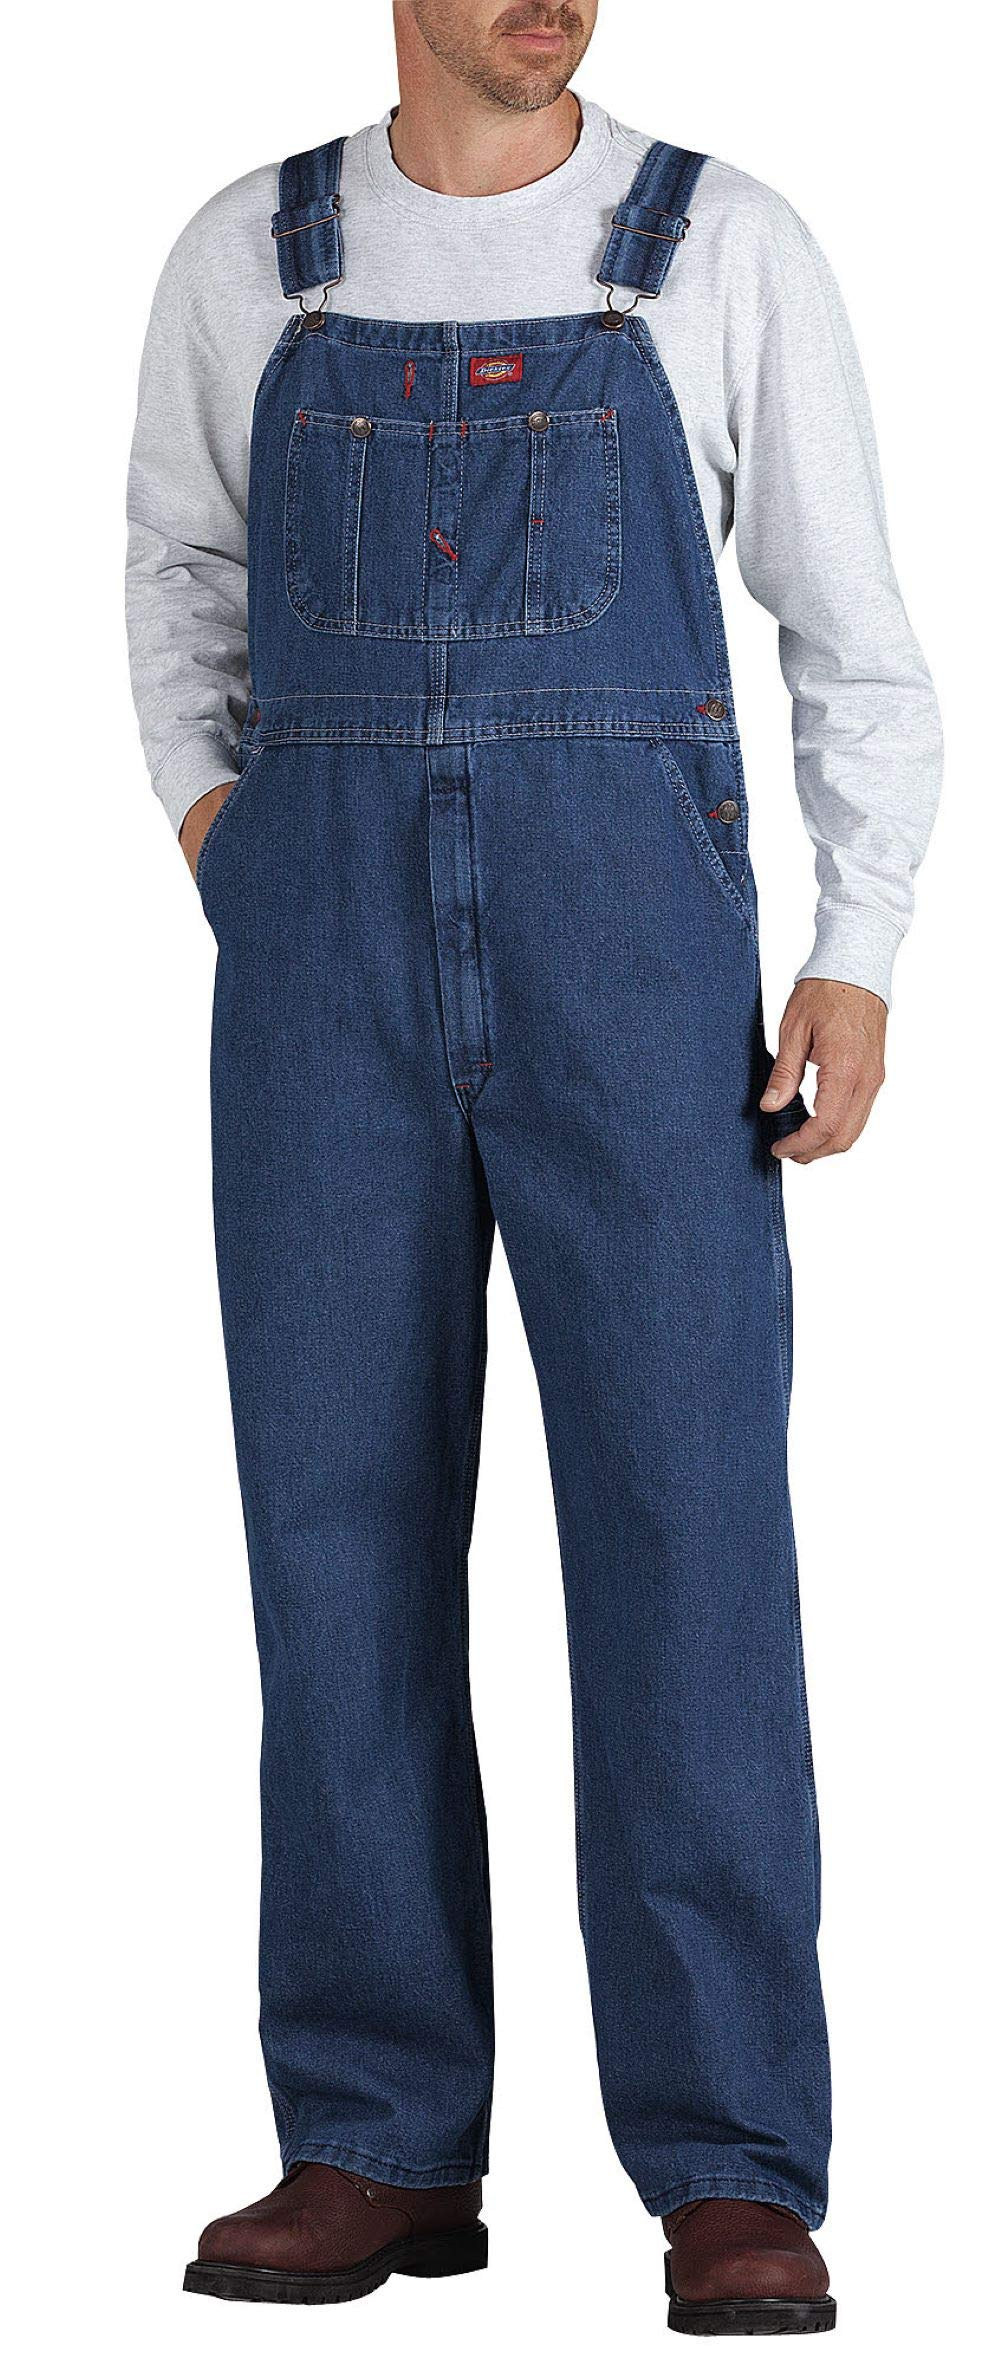 Dickies Men's Denim Bib Overall, Stone Washed Indigo Blue, 34 x 30 by Dickies